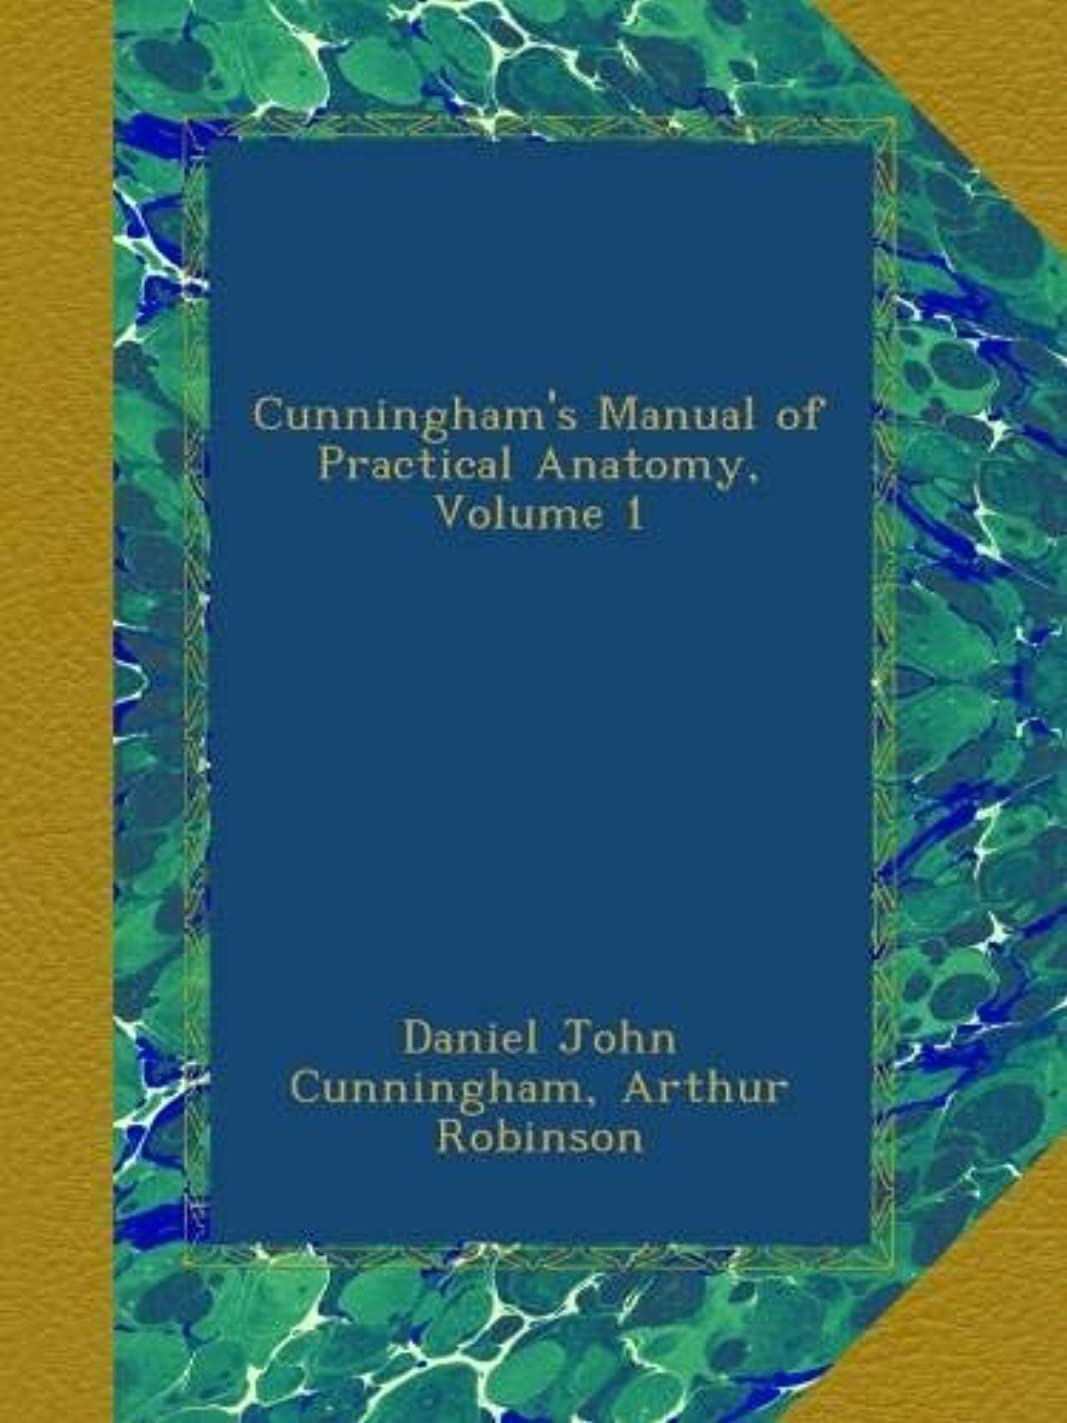 魔術数字カートCunningham's Manual of Practical Anatomy, Volume 1